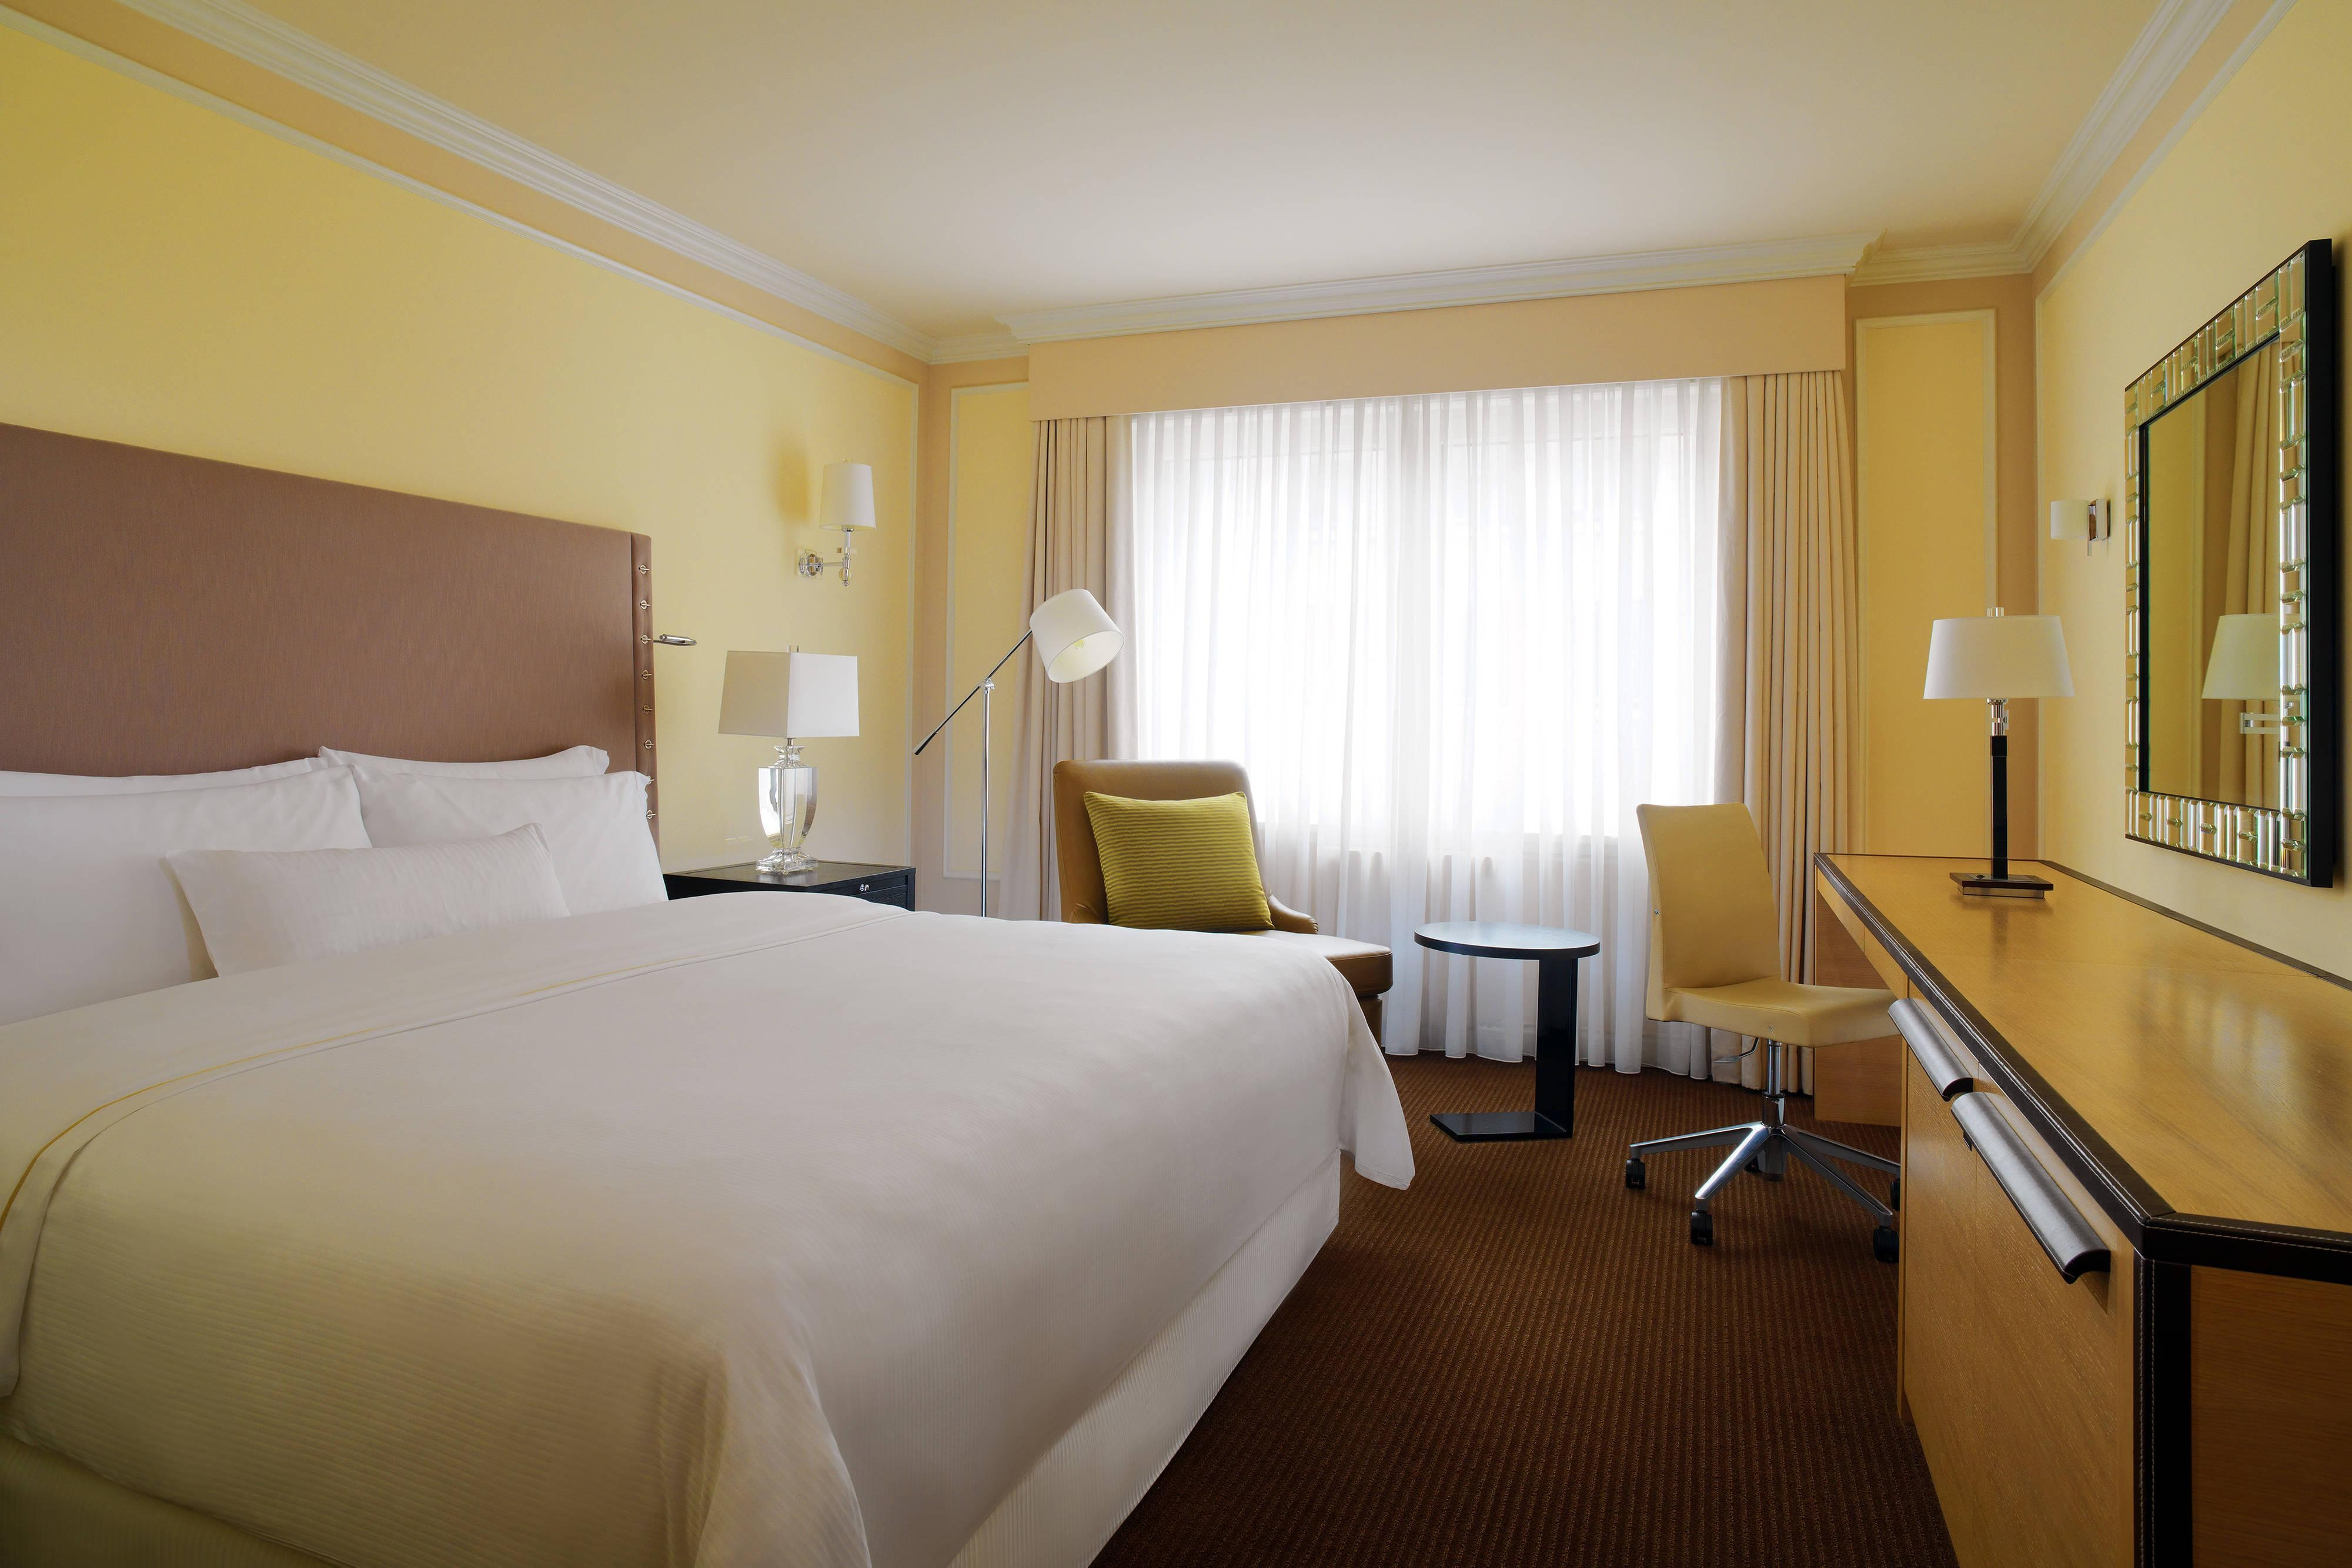 Your accomodation in Berlin - Deluxe room at the Westin Grand